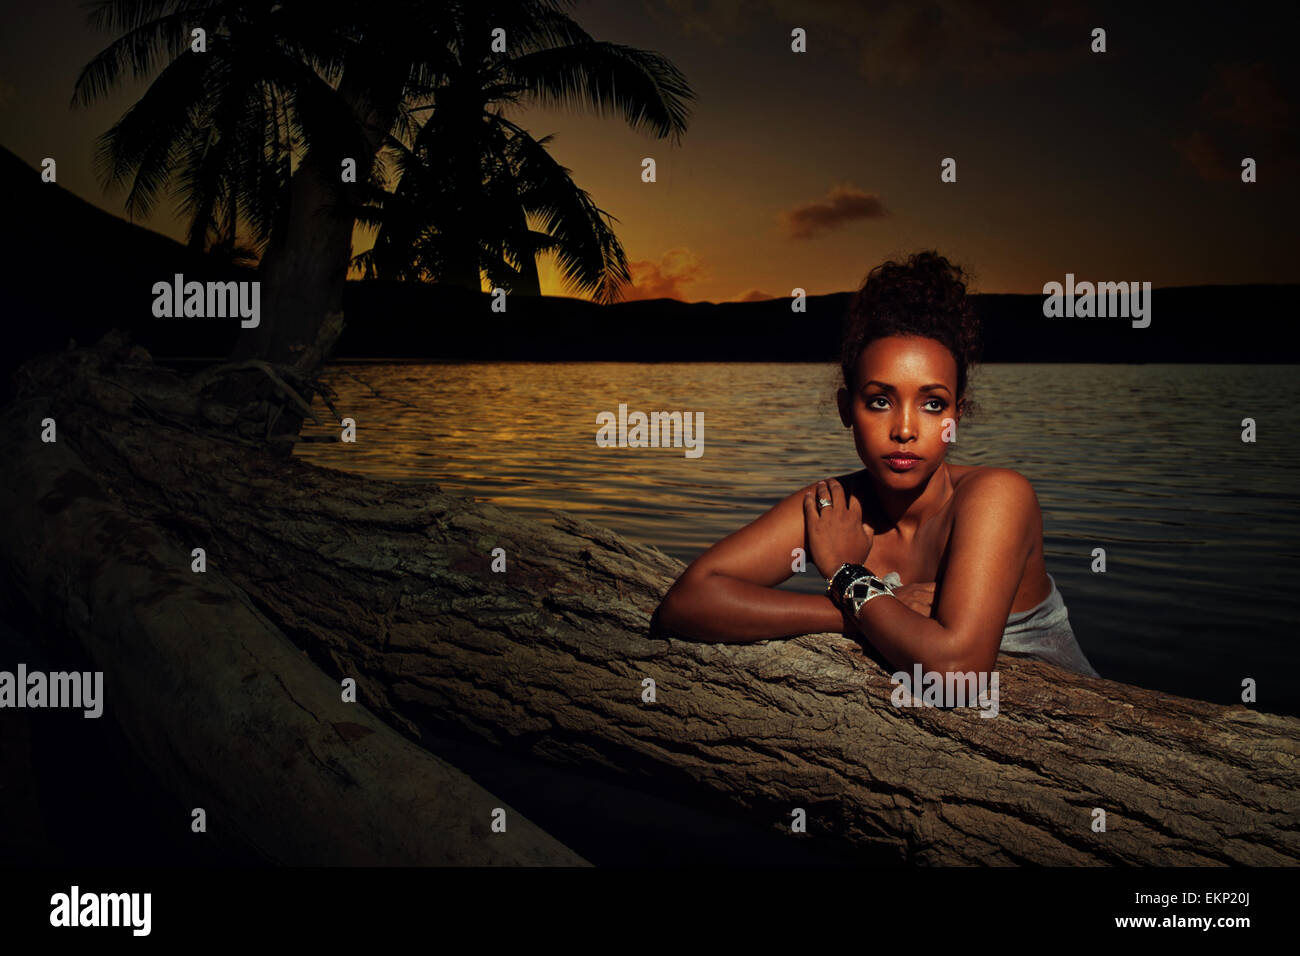 Portrait of an Asian girl at sunset - Stock Image